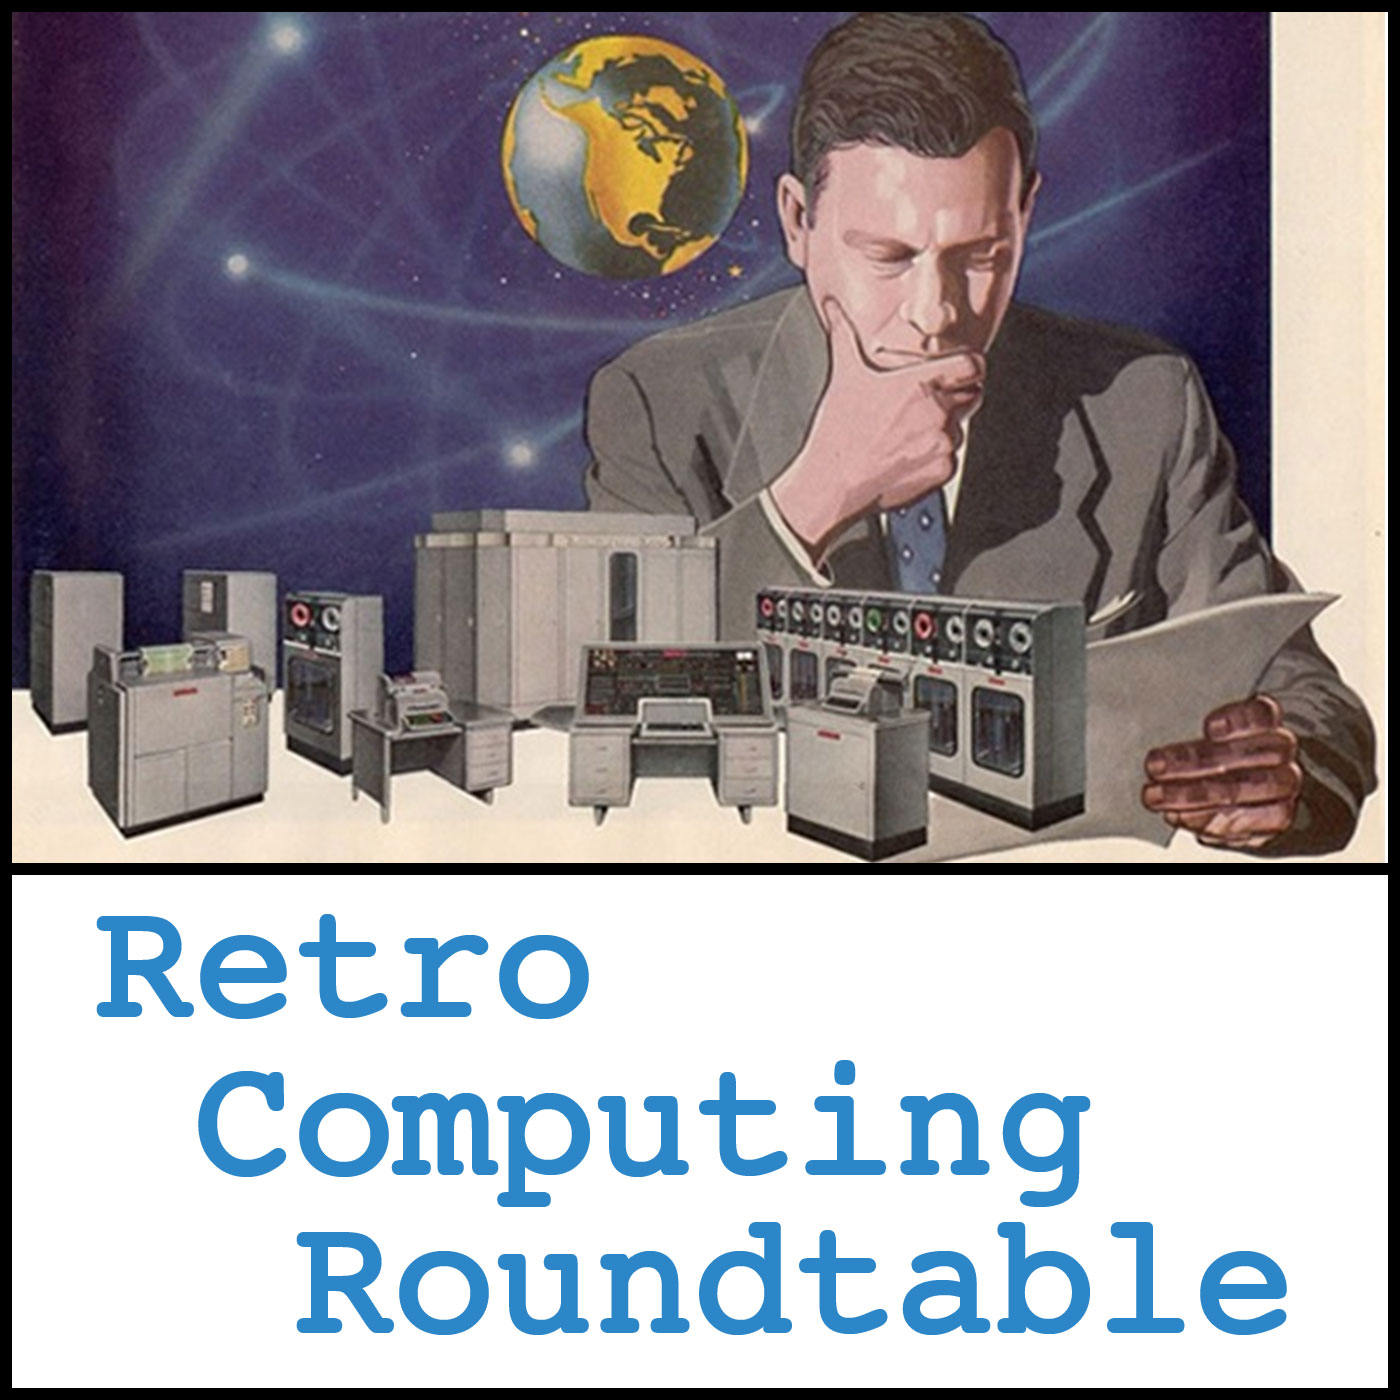 Retro Computing Roundtable